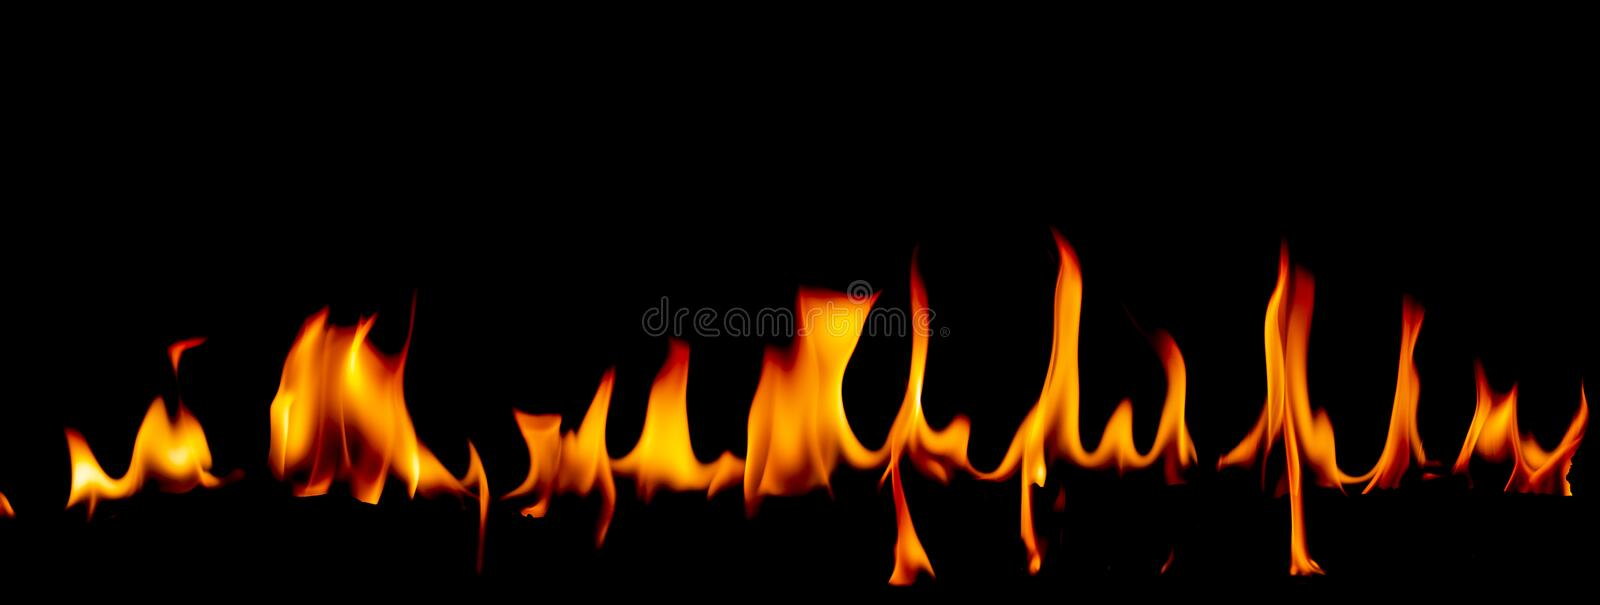 Fire flames on Abstract art black background, Burning red hot sparks rise. Fiery orange glowing flying particles royalty free stock photo